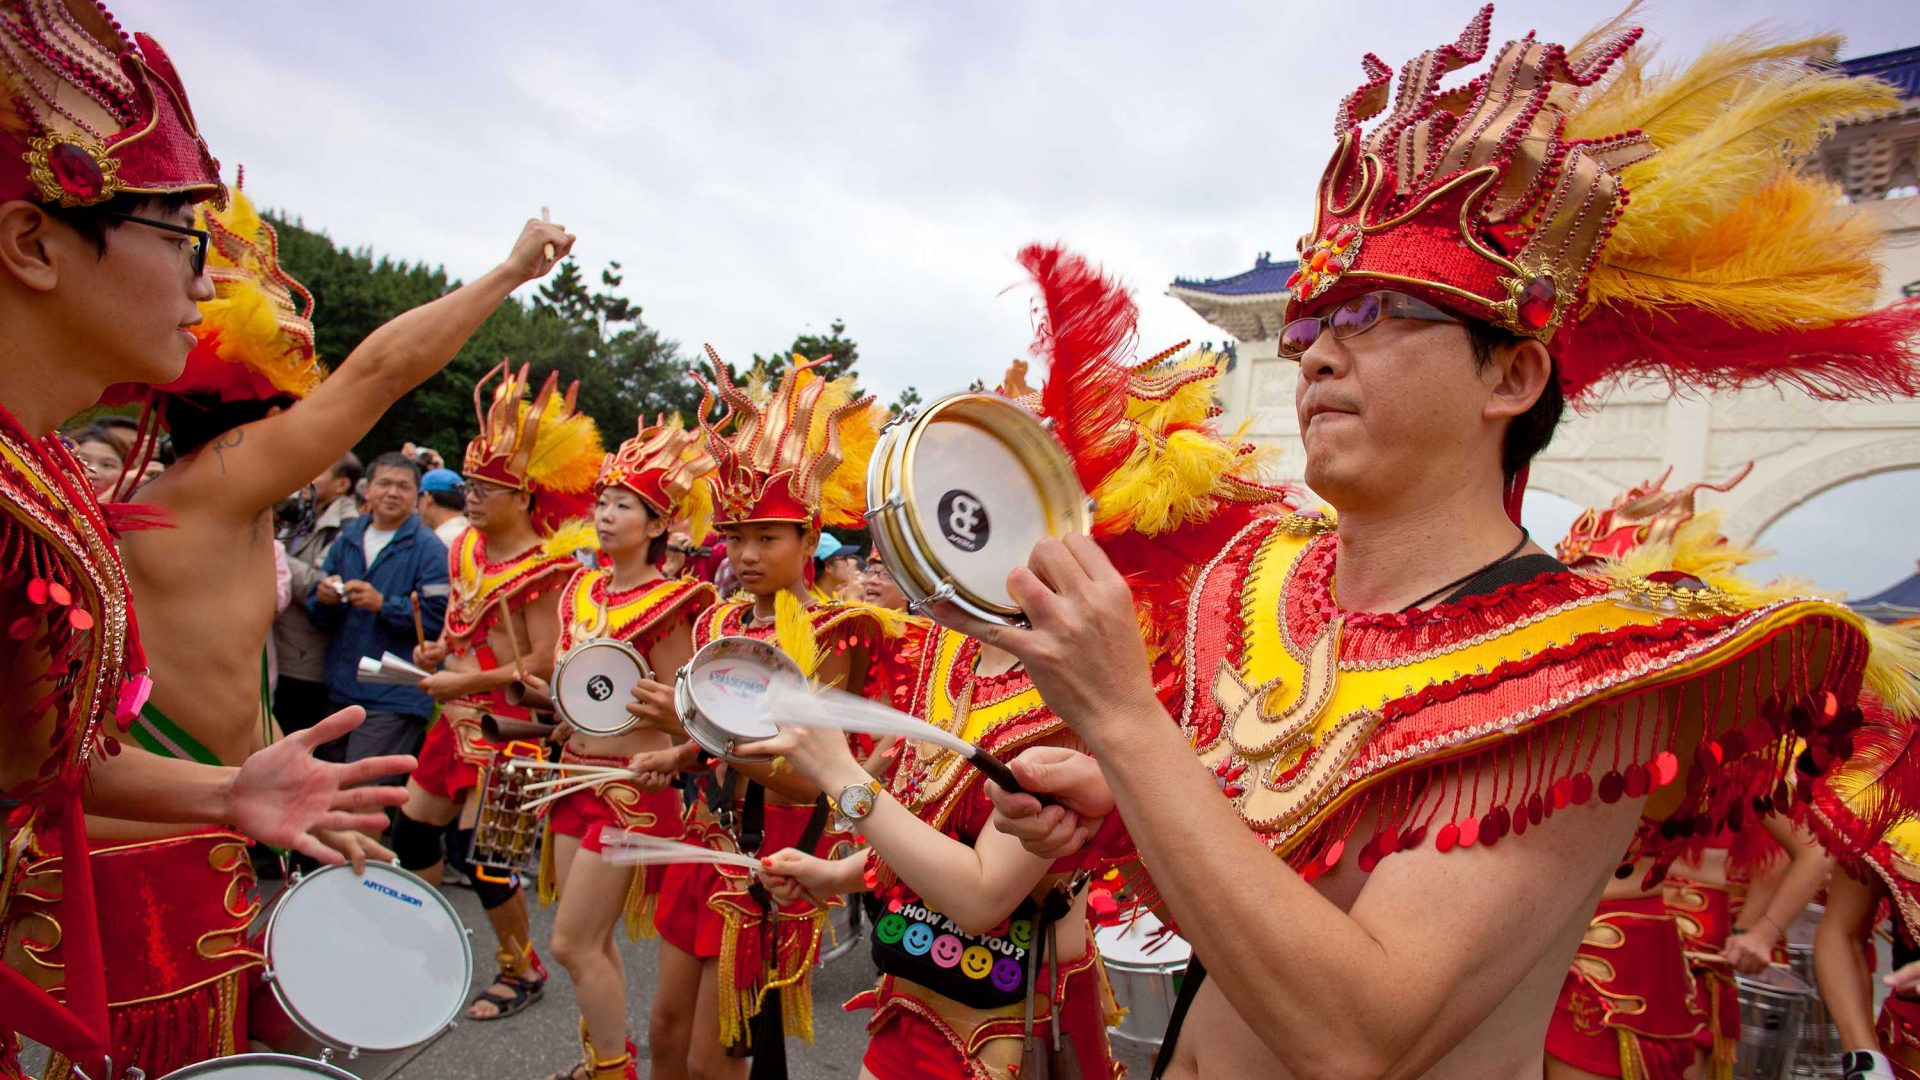 If you live in Taipei's Dream Community, this Indigenous festival is included in your rent